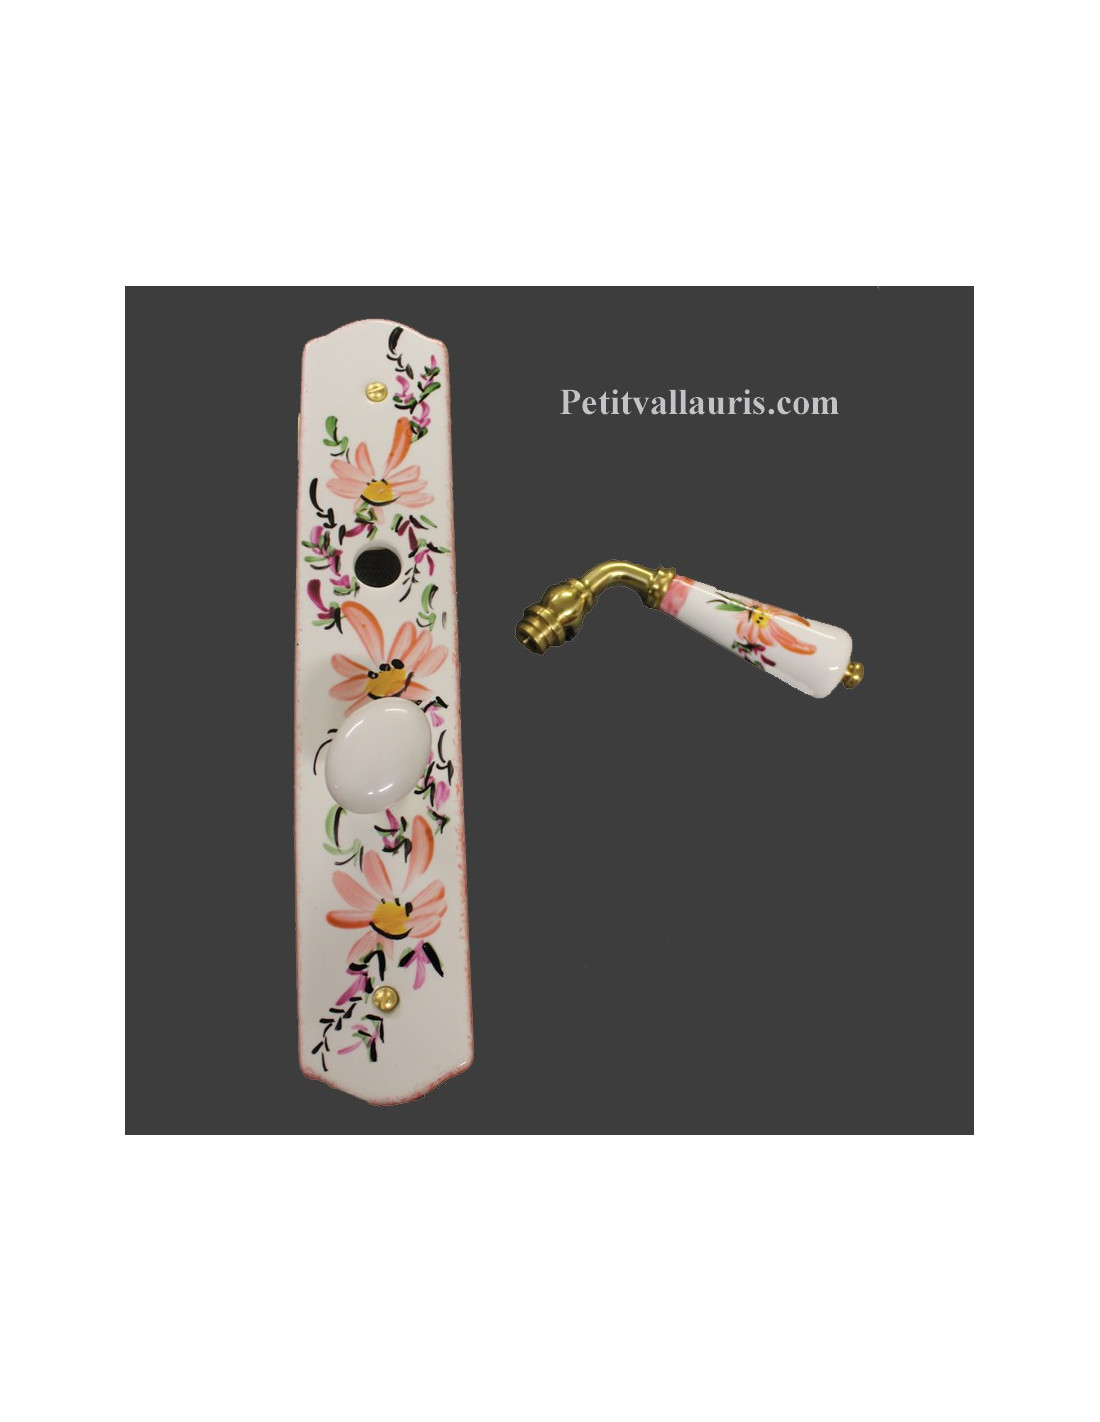 Plaque de propret en porcelaine avec verrou pour for Plaque de porte decorative